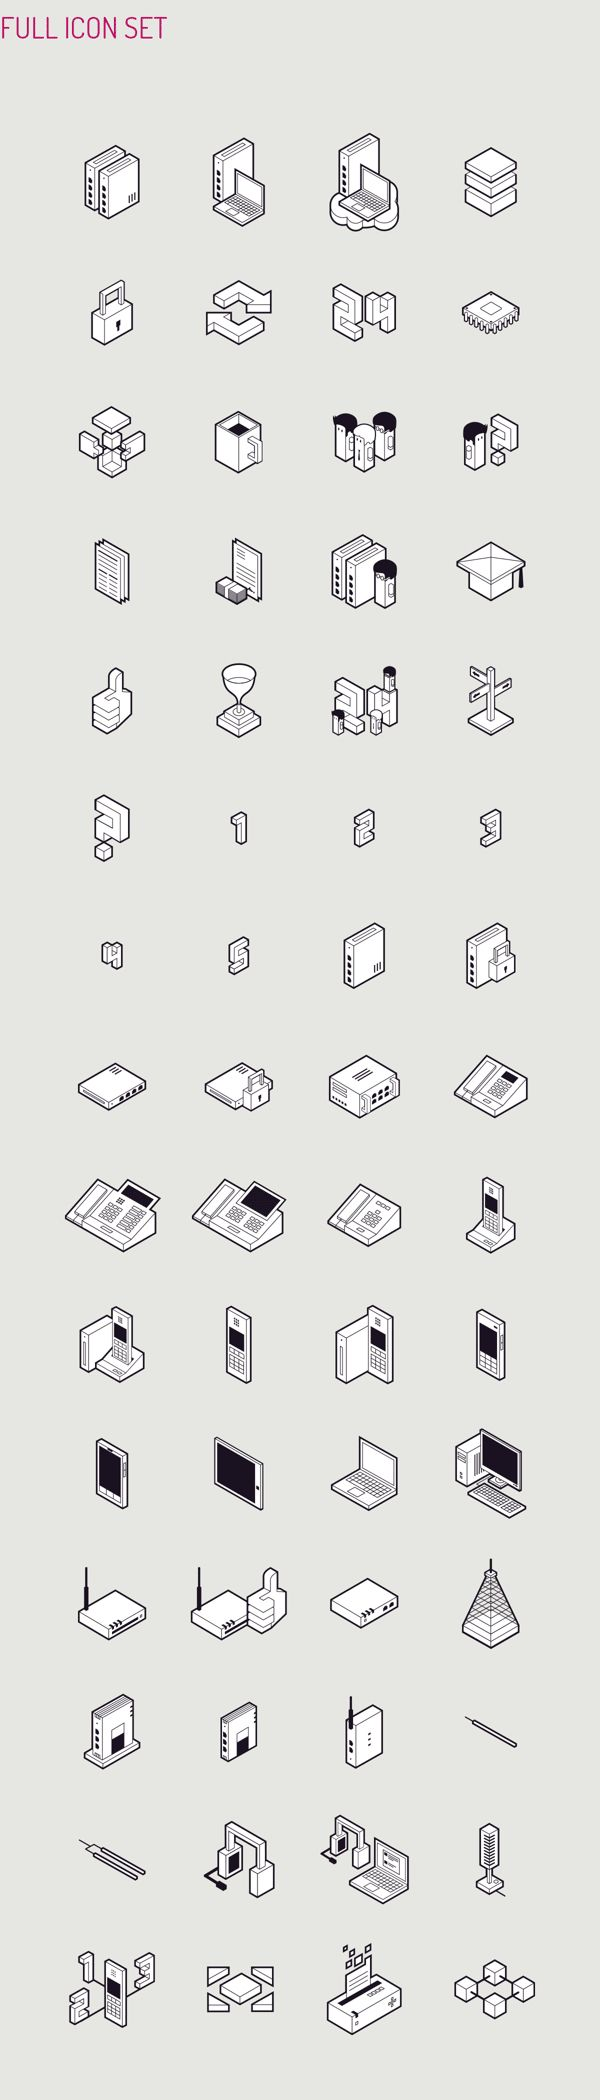 Isometric Icon Design by Perconte for Datera SA